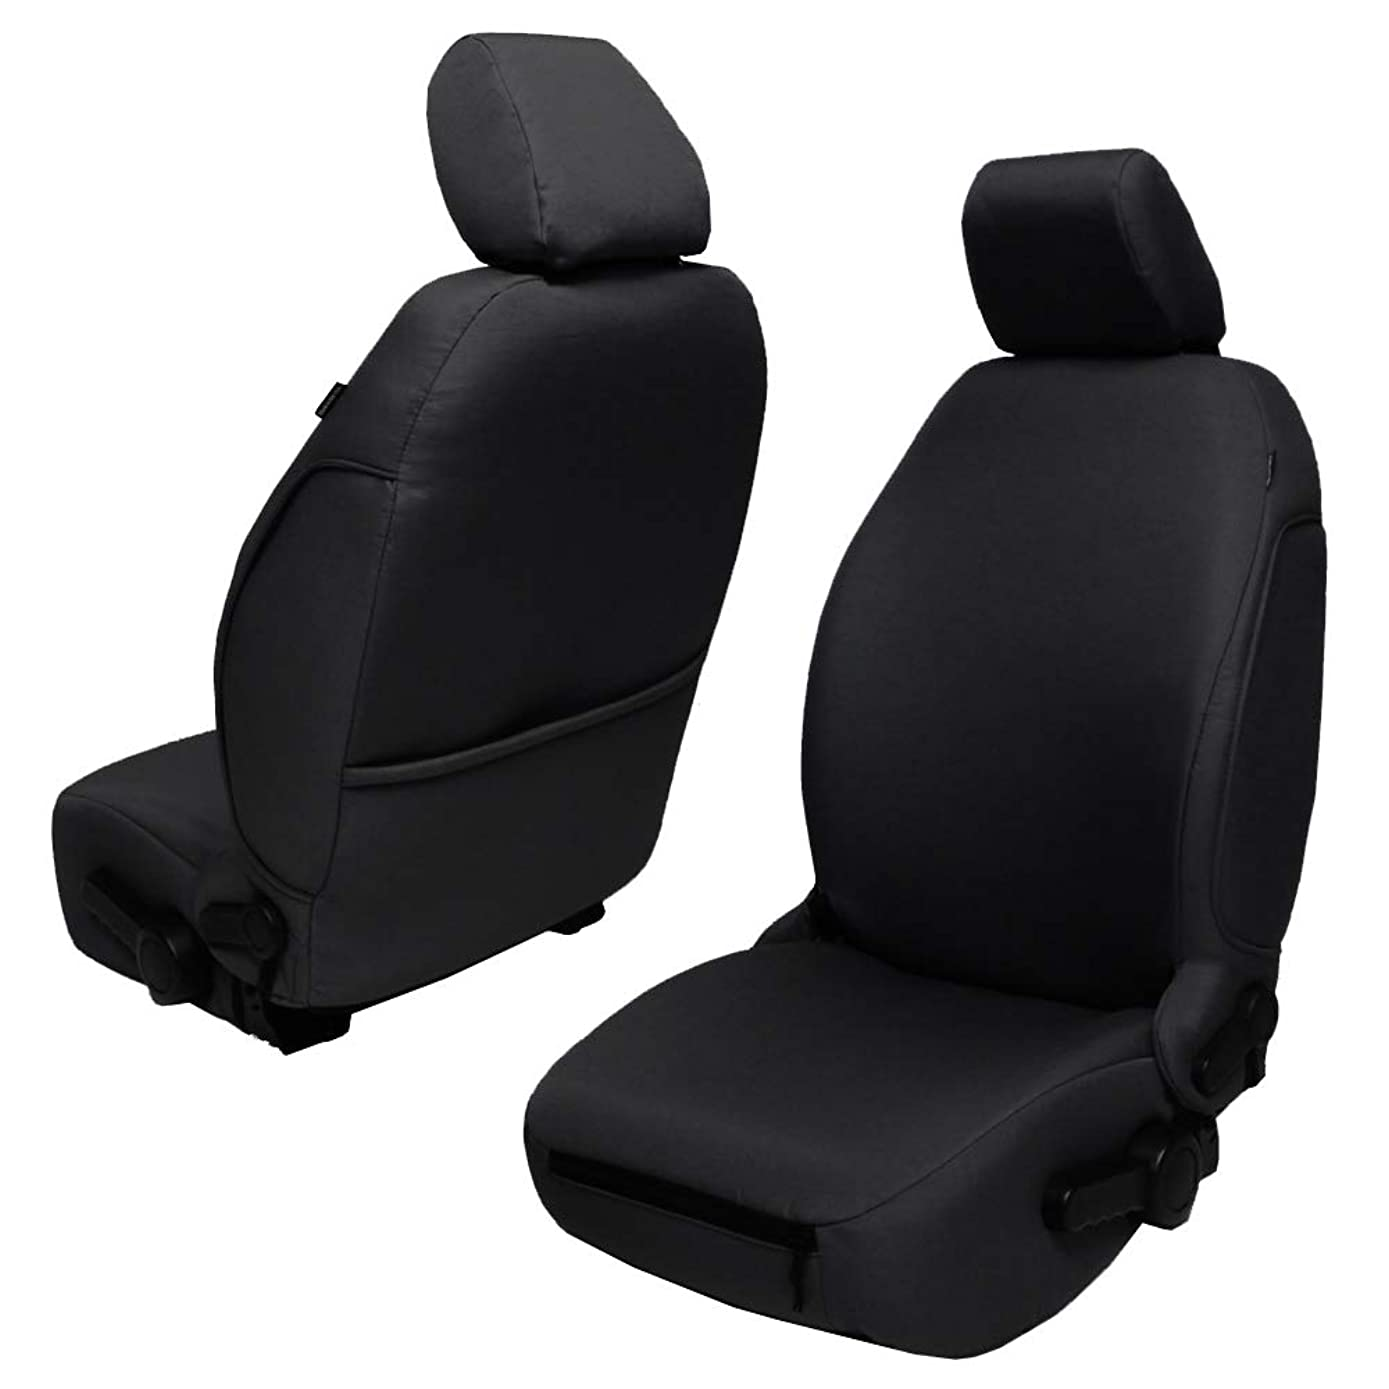 Bartact JKBC1112FP - 2011-2012 Jeep Wrangler JK and JKU Baseline Performance Front Seat Covers (Pair) (Black)